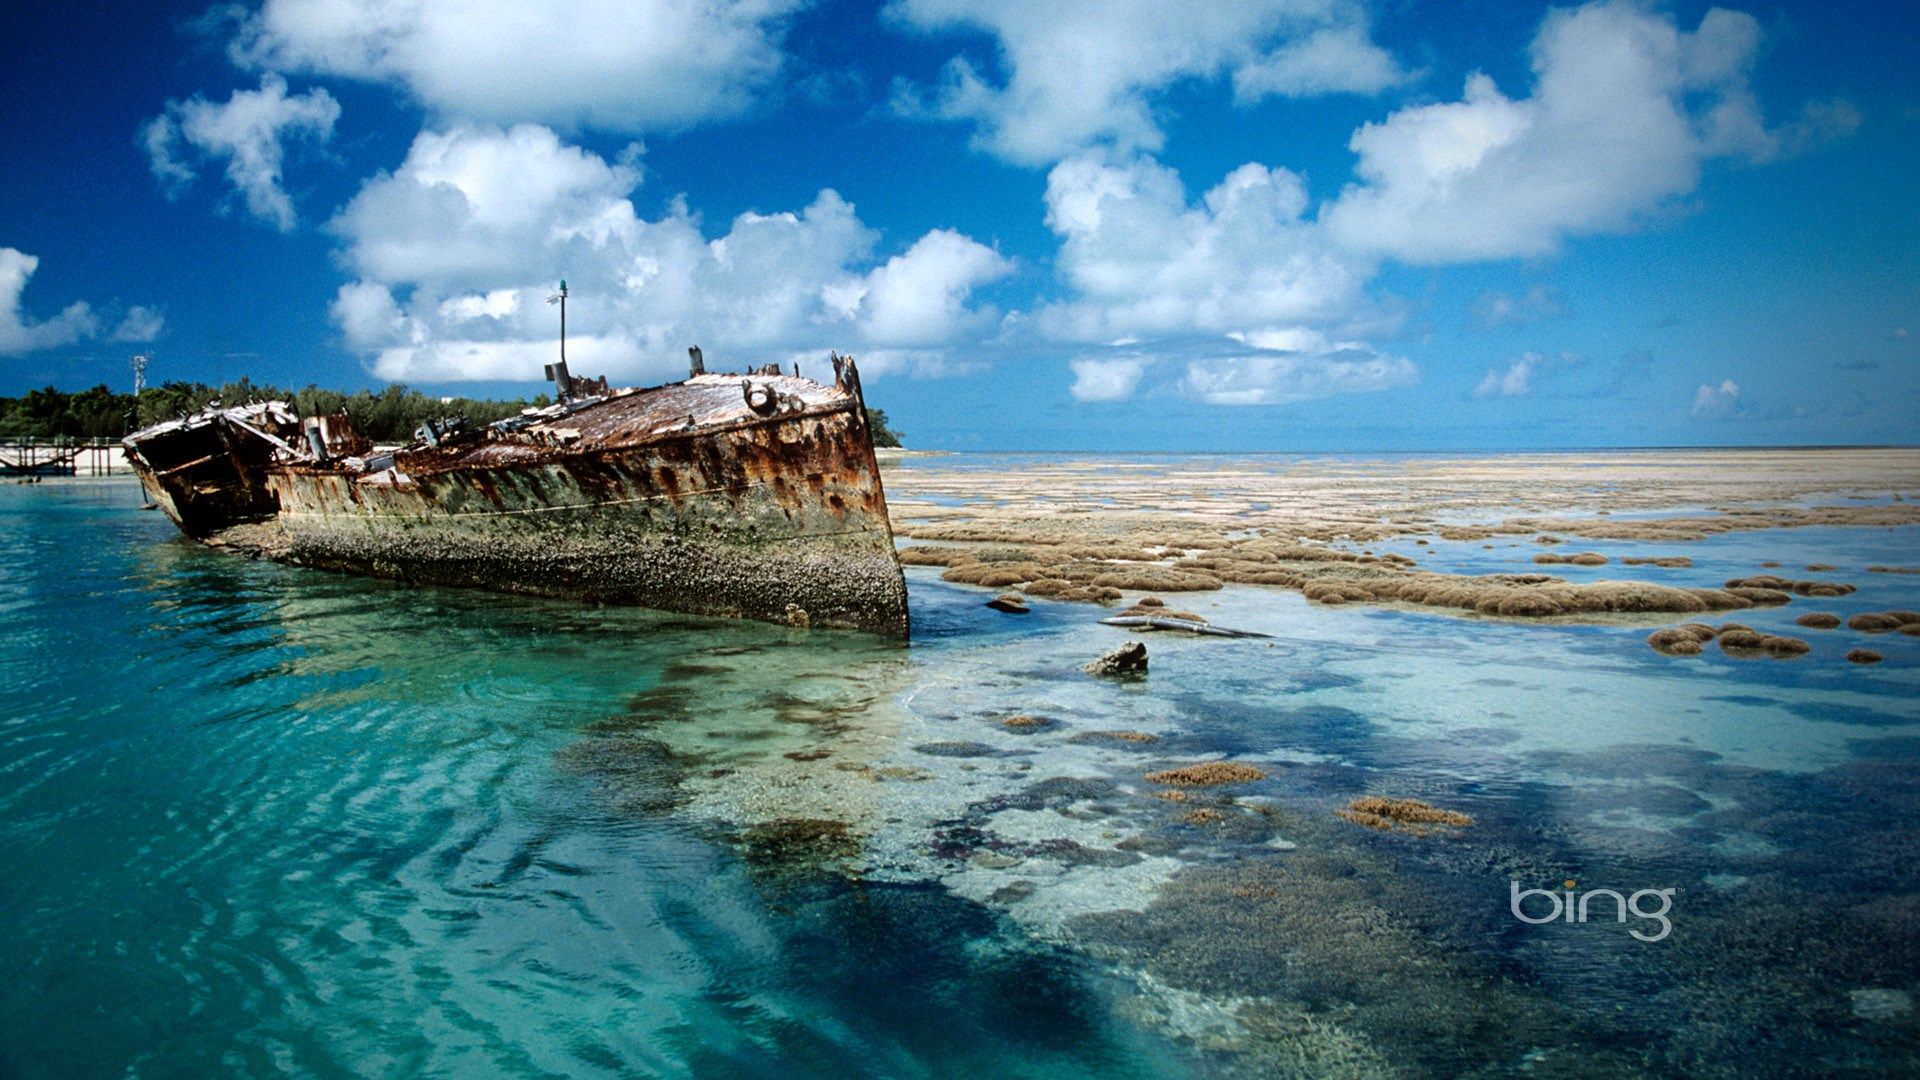 bing shipwreck on heron island desktop background australia full hd